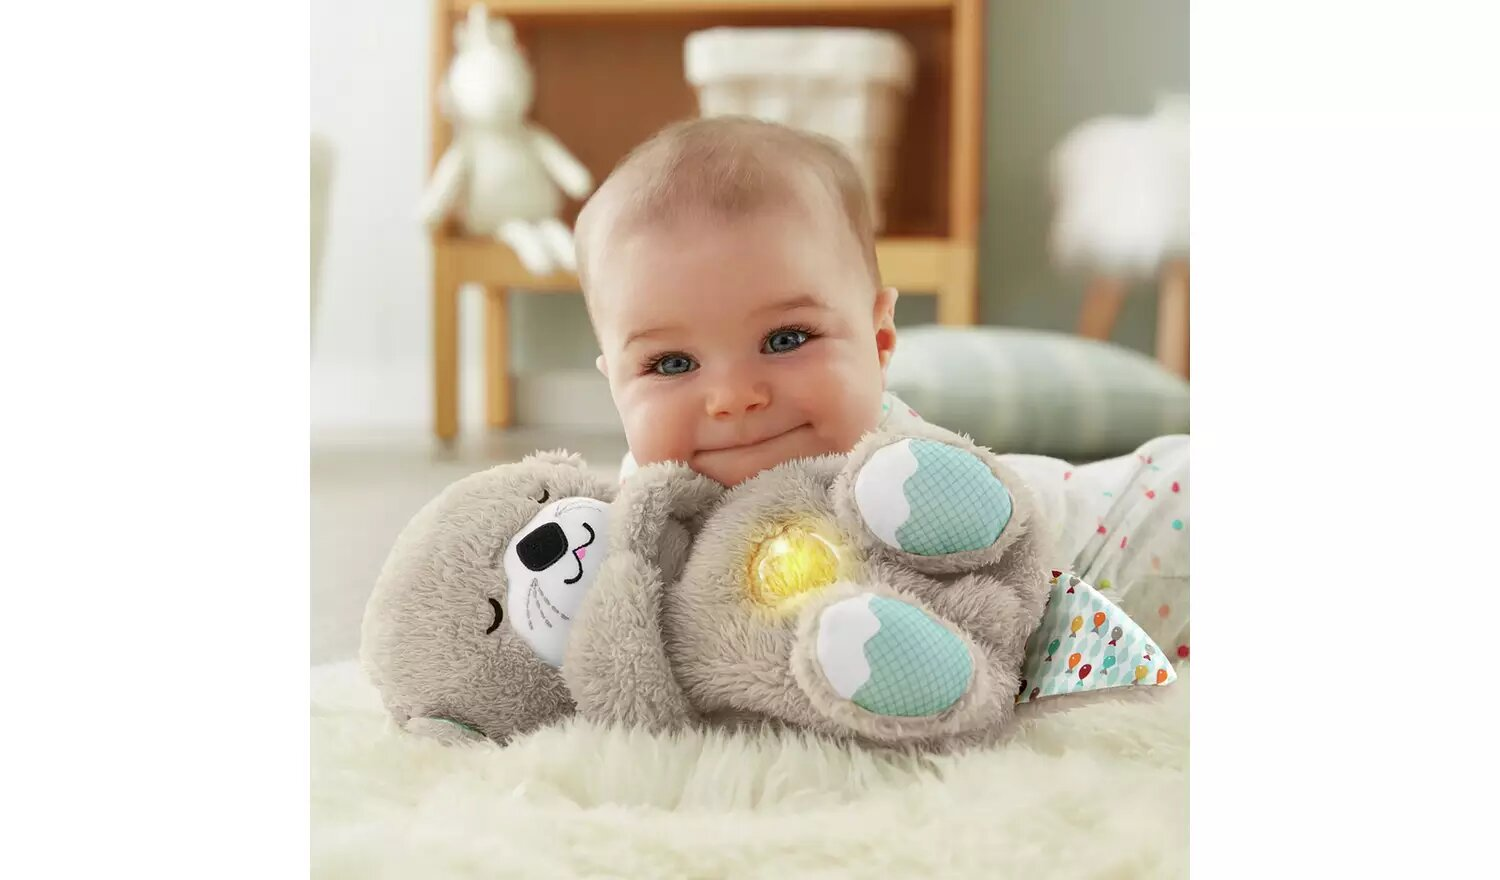 Fisher-Price Soothe'n Snuggle Otter Baby Toy.